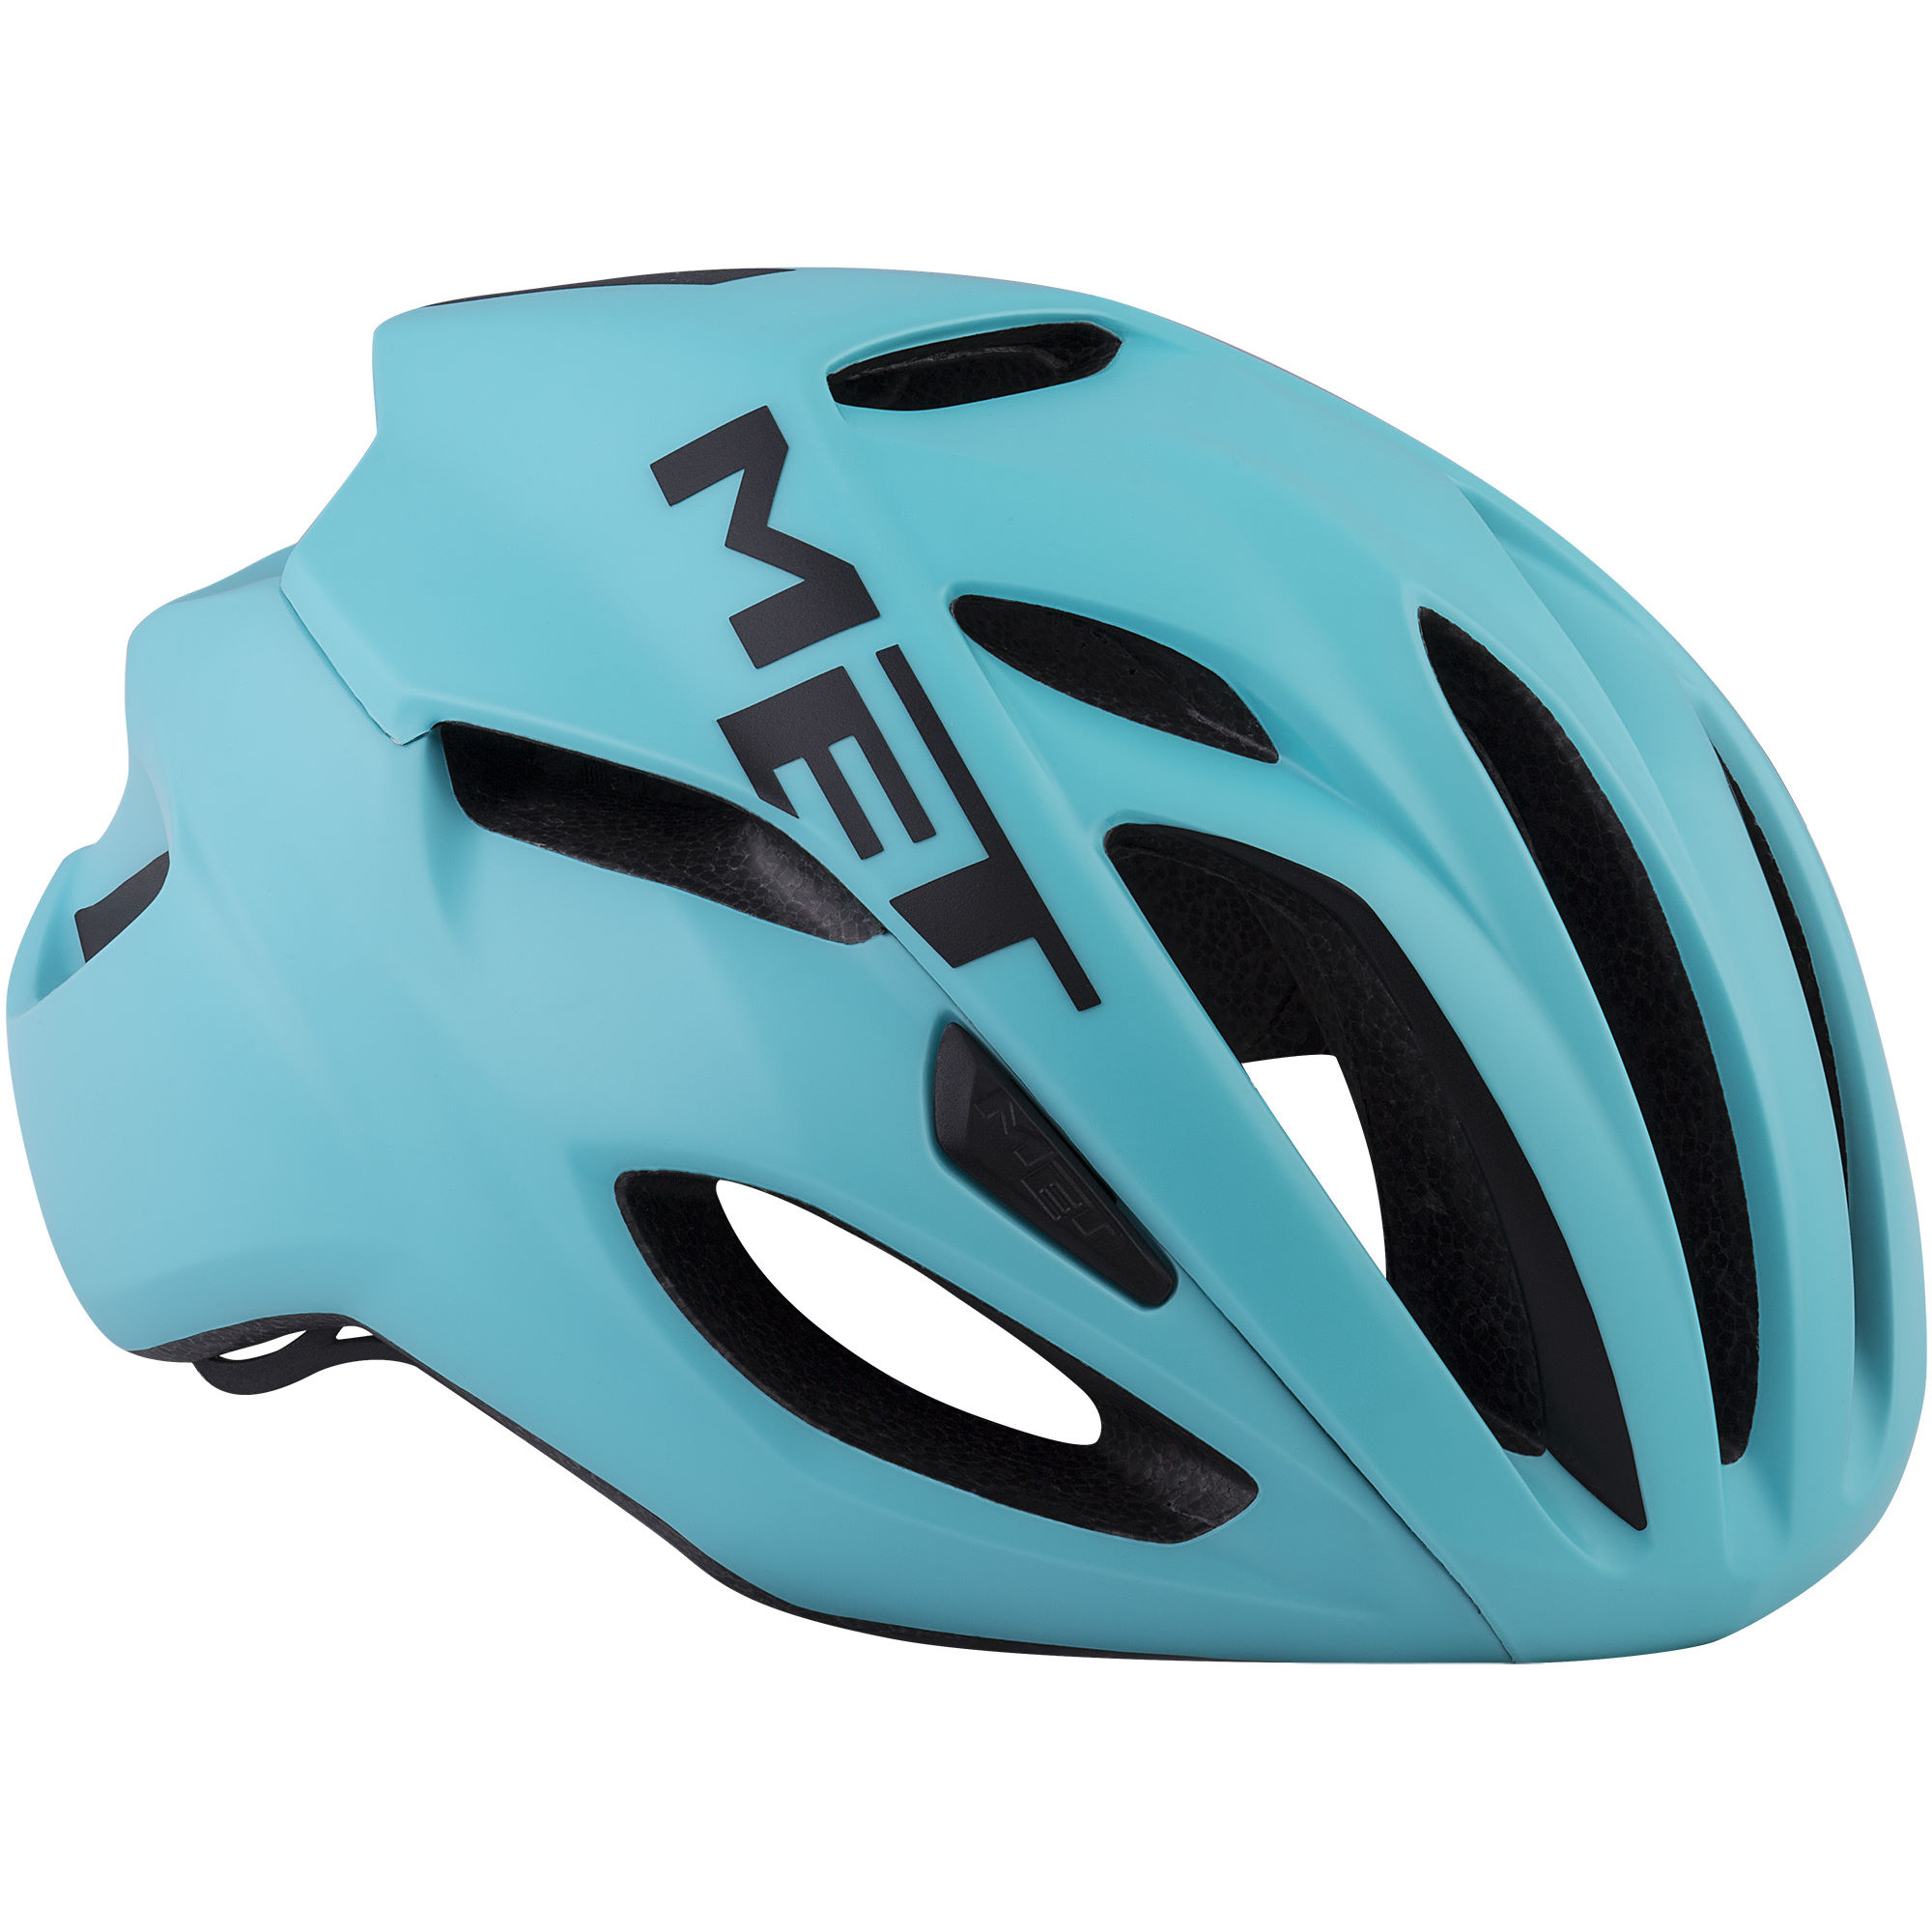 casques de route met team drops rivale aero road helmet wiggle france. Black Bedroom Furniture Sets. Home Design Ideas